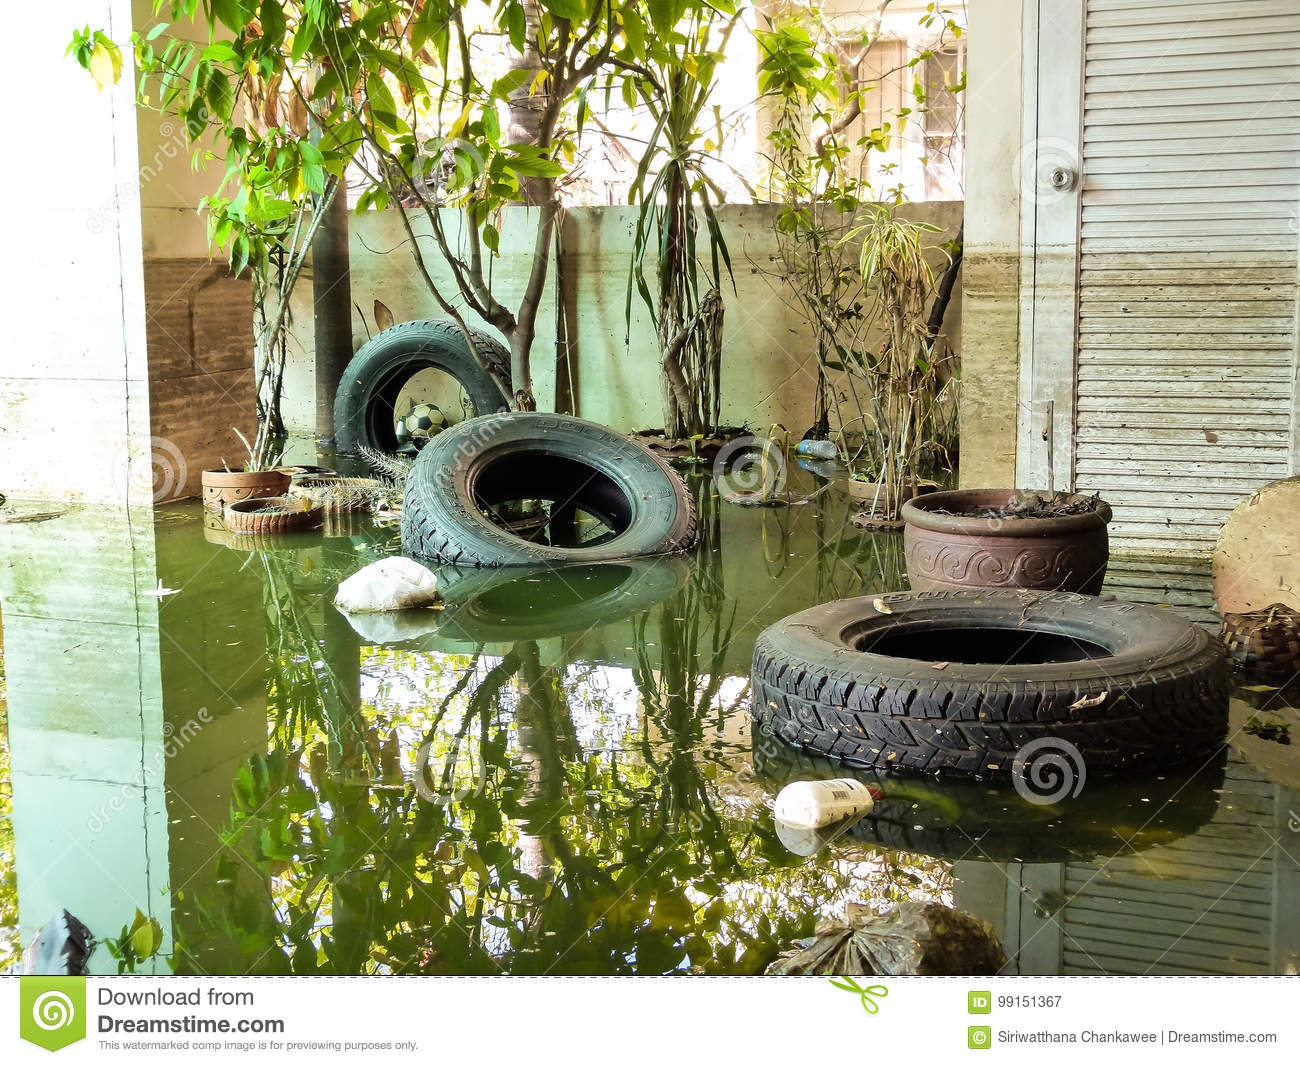 Situation after heavy flood for a month